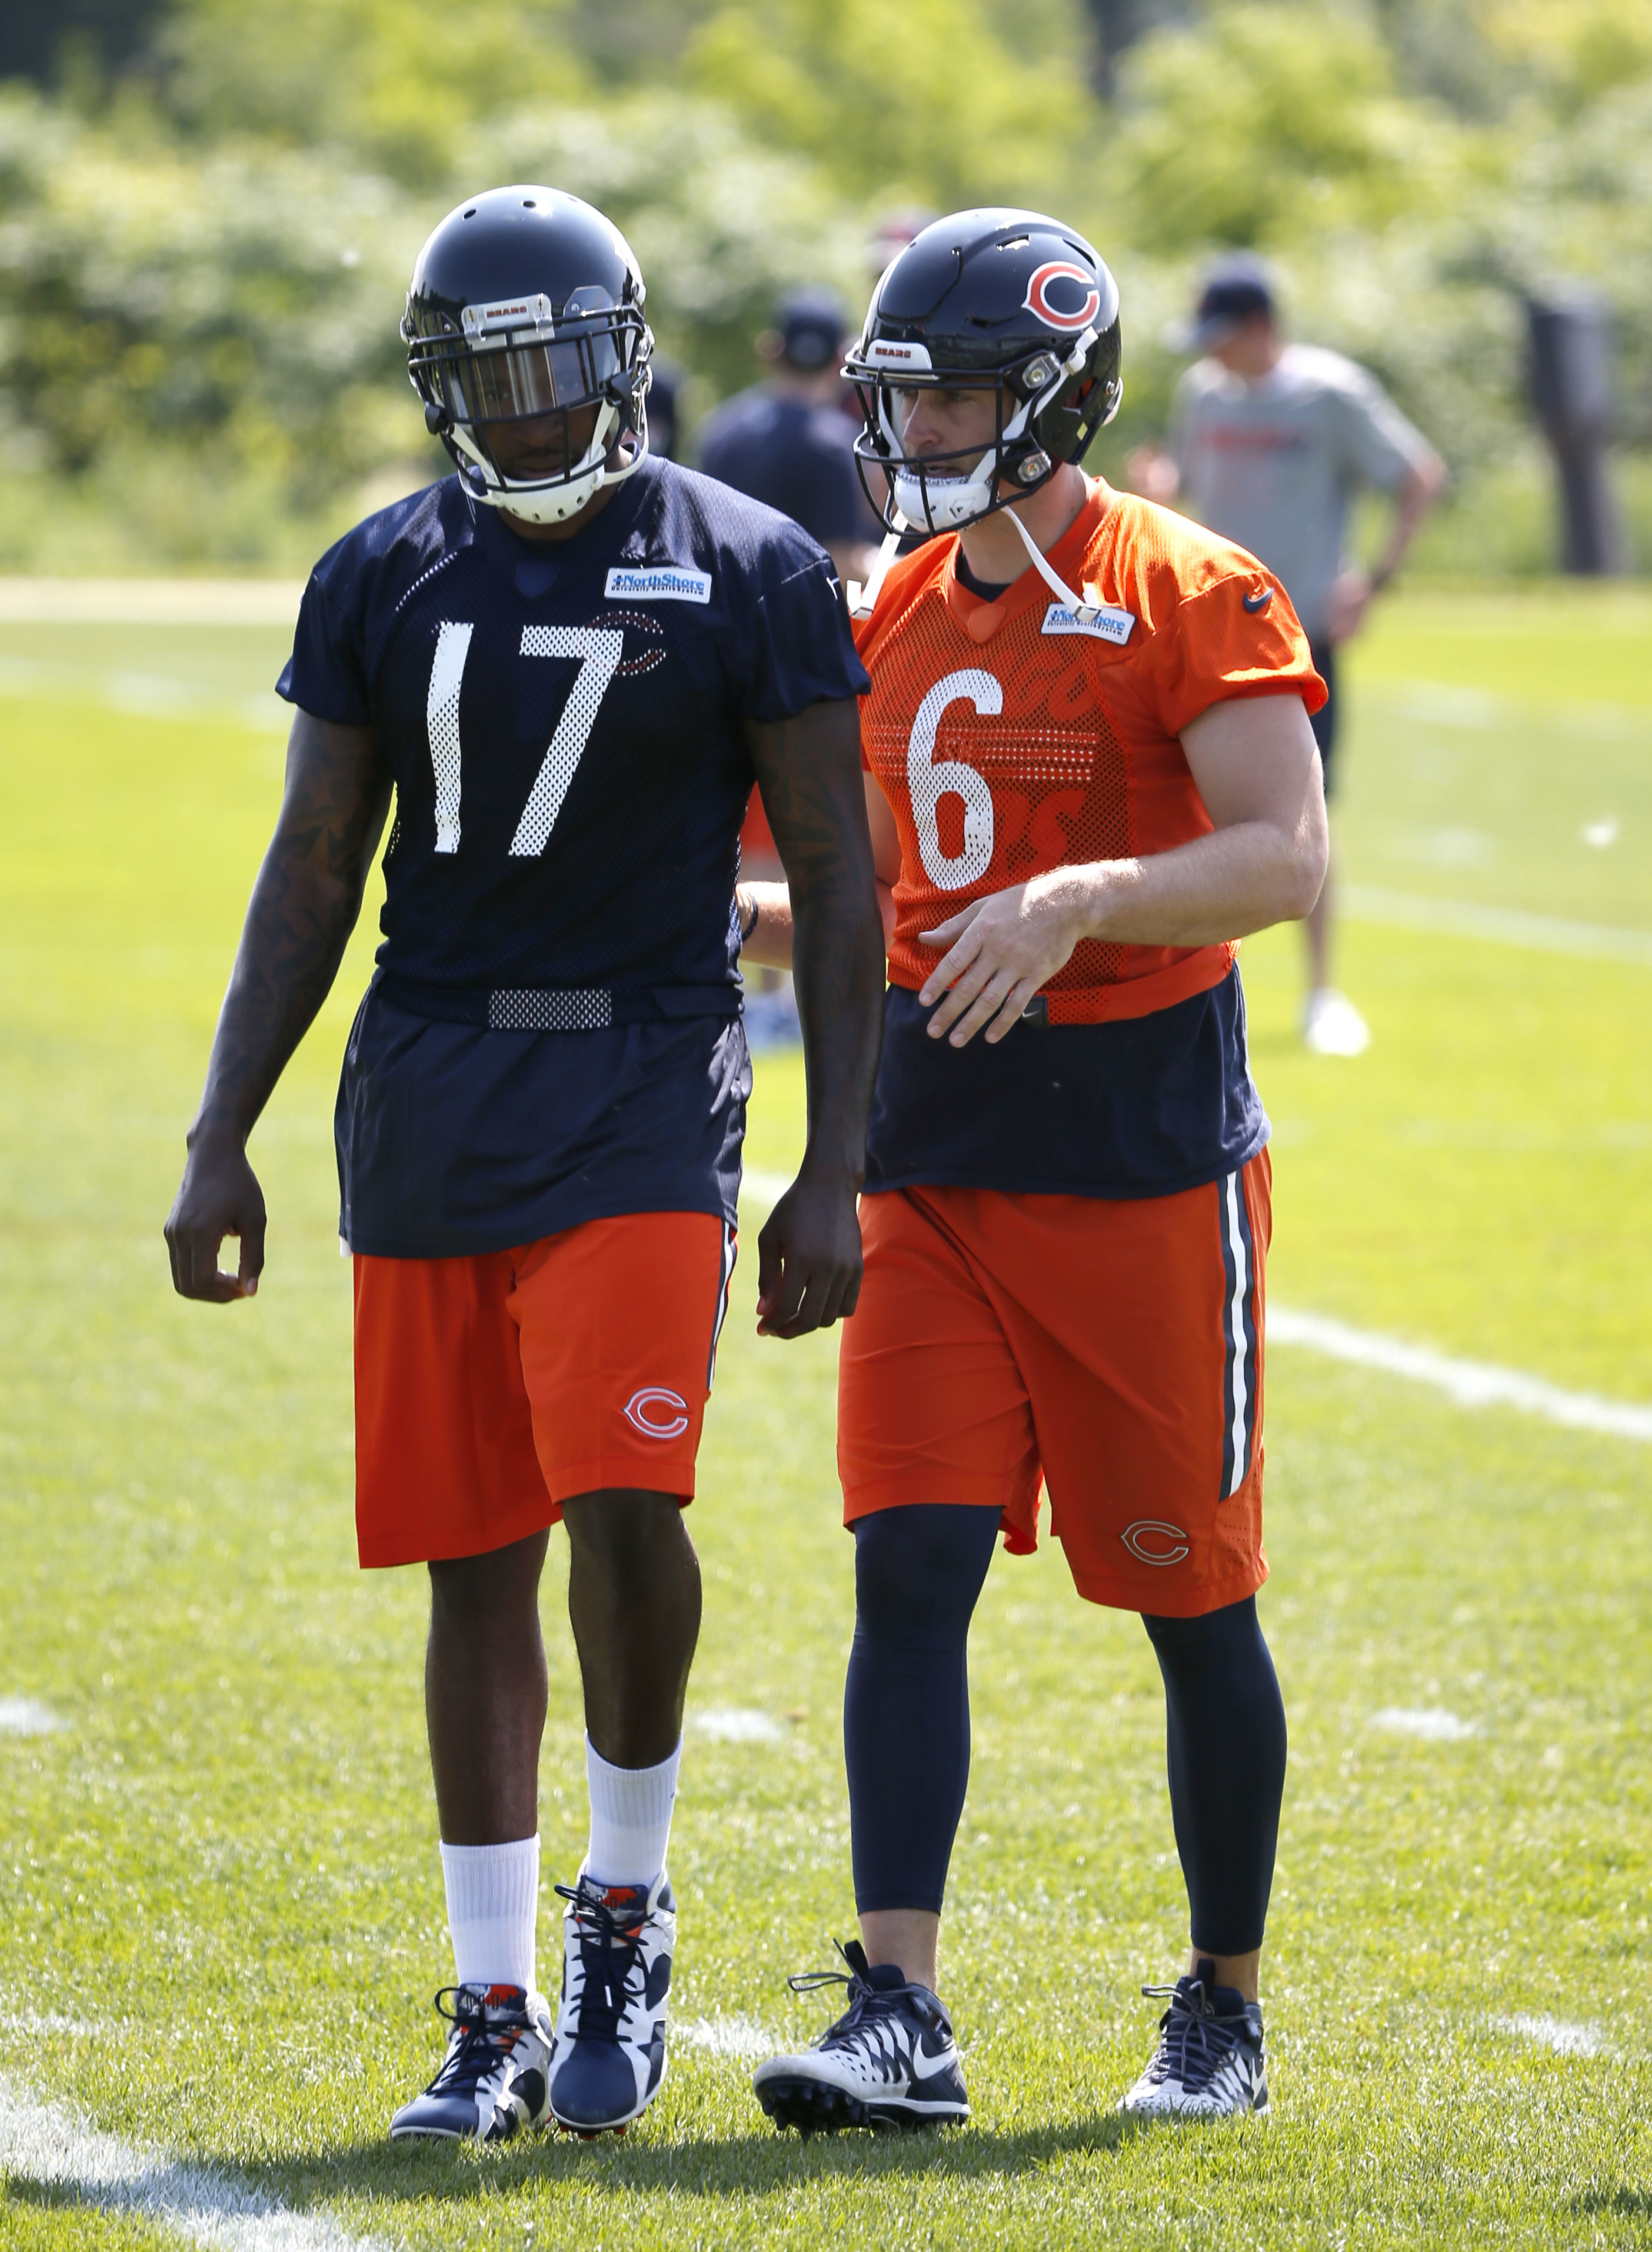 Chicago Bears' Jay Cutler, right, talks with Alshon Jeffery during the NFL football team's minicamp at Halas Hall Tuesday, June 14, 2016, in Lake Forest, Lake Forest, Ill. (AP Photo/Charles Rex Arbogast)